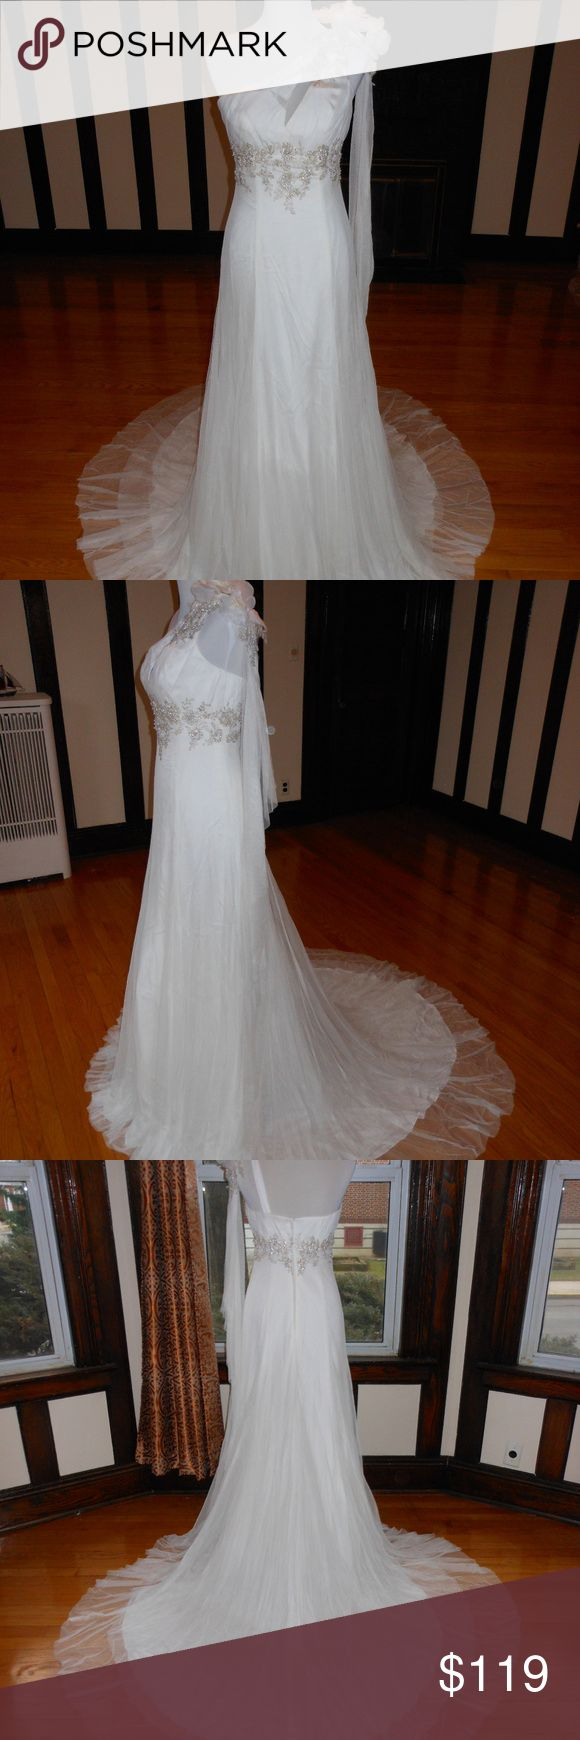 """LILLY Bridal Wedding Dress S02 This is an Authentic LILLY Bridal Wedding Dress Gown. It has a gorgeous fit and flare style with a fabulous chapel train. It comes with a match shawl This dress is brand new in great condition with the original label and tags. It was never worn.  Size: 8 Bust: 35"""" Waist: 28"""" Hips: 38"""" Size: 12 Bust: 38"""" Waist: 30"""" Hips: 38"""" Size: 14 Bust: 39"""" Waist: 31"""" Hips: 40"""" Size: 16 Bust: 40"""" Waist: 32"""" Hips: 42""""  Color: Ivory/Silver LILLY Dresses Wedding"""